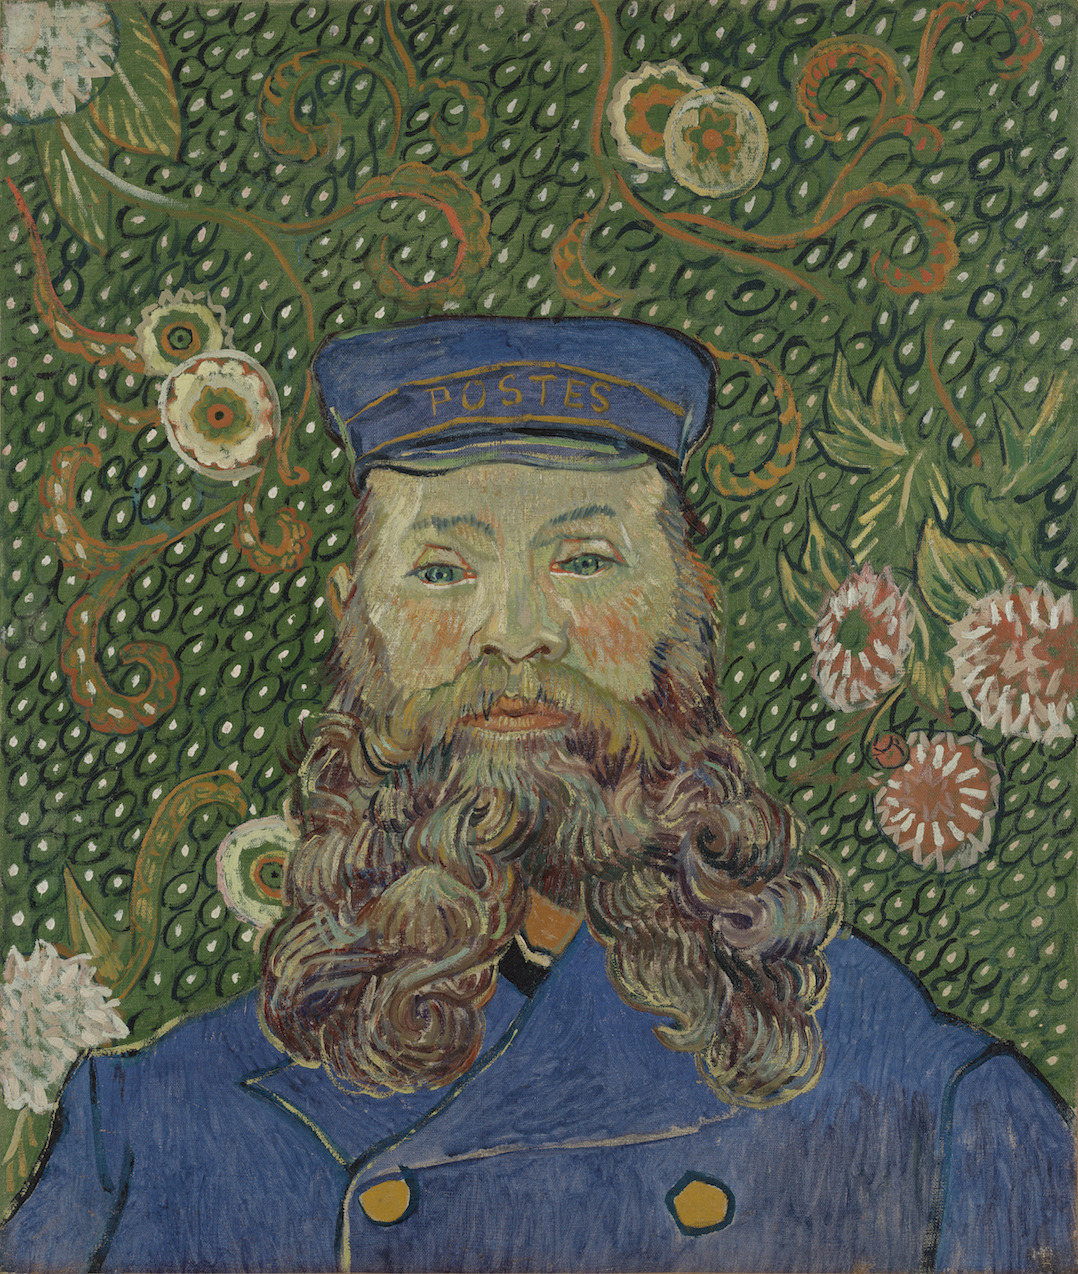 Van Gogh Masterworks from Moma This Magnficent Life